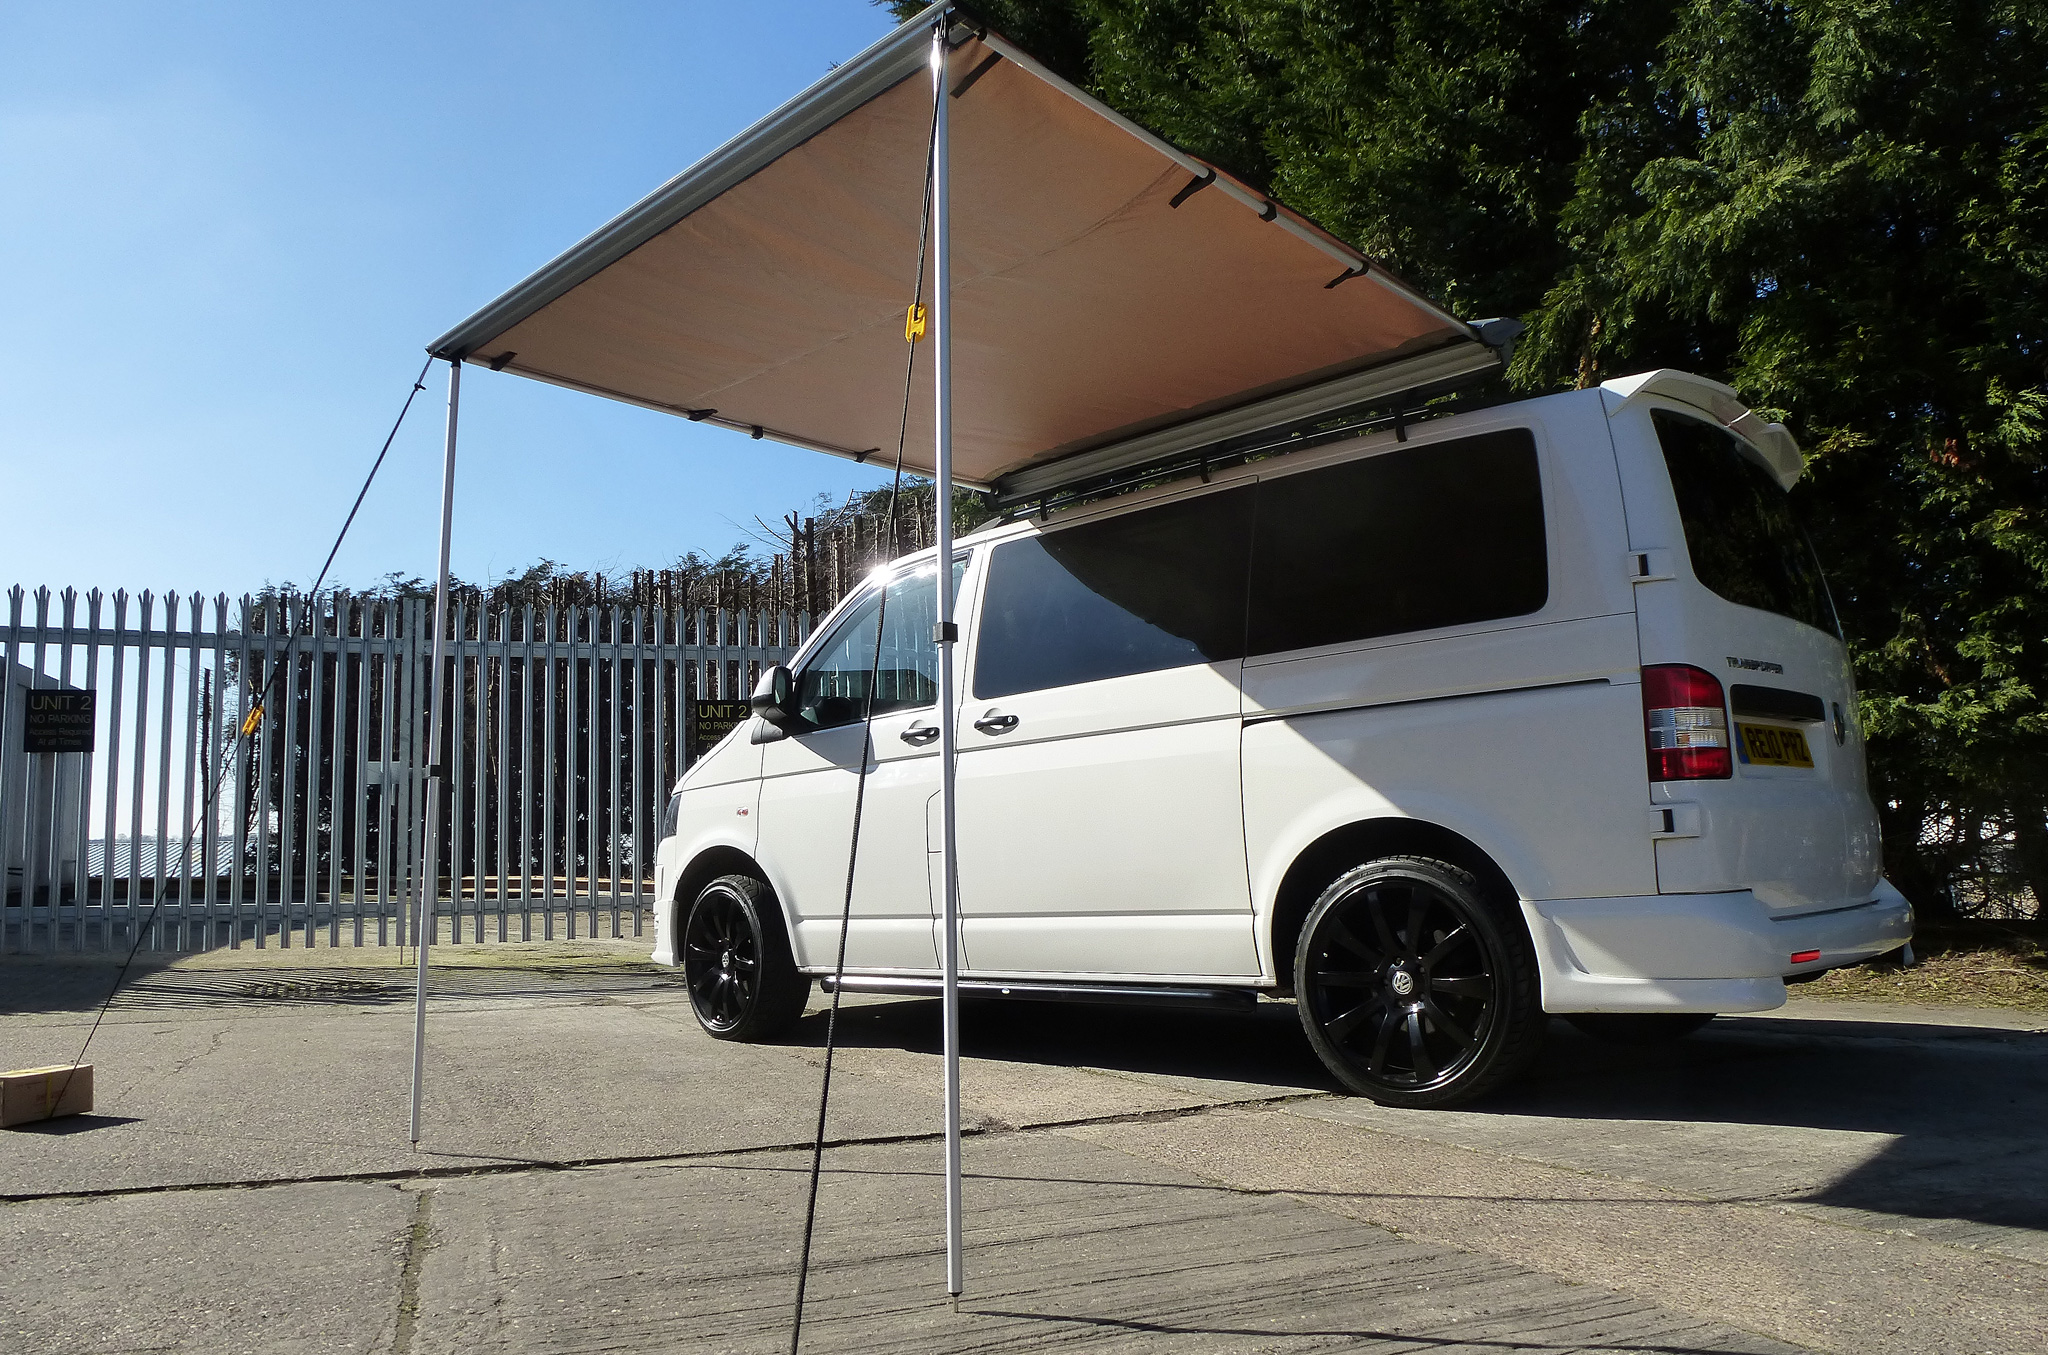 2M X 2M Van Pull Out Awning Heavy Duty Roof Racks Roof Tents Safari Vans & 2M X 2M Van Pull Out Awning Heavy Duty Roof Racks Roof Tents ... memphite.com